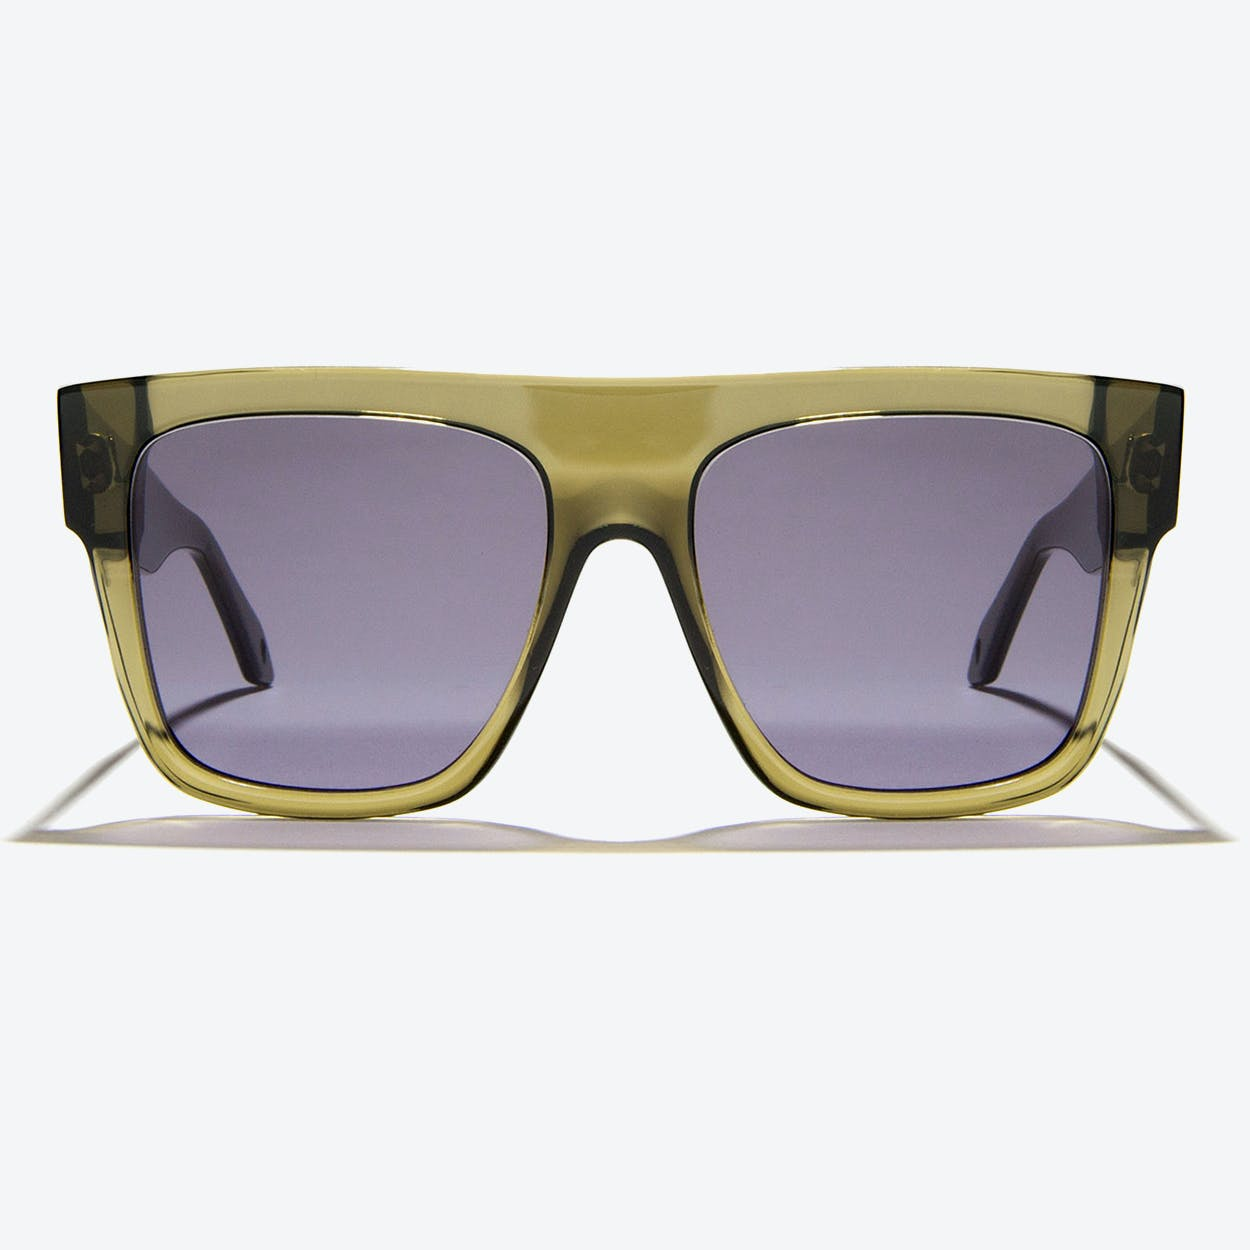 Proteus Sunglasses in Green